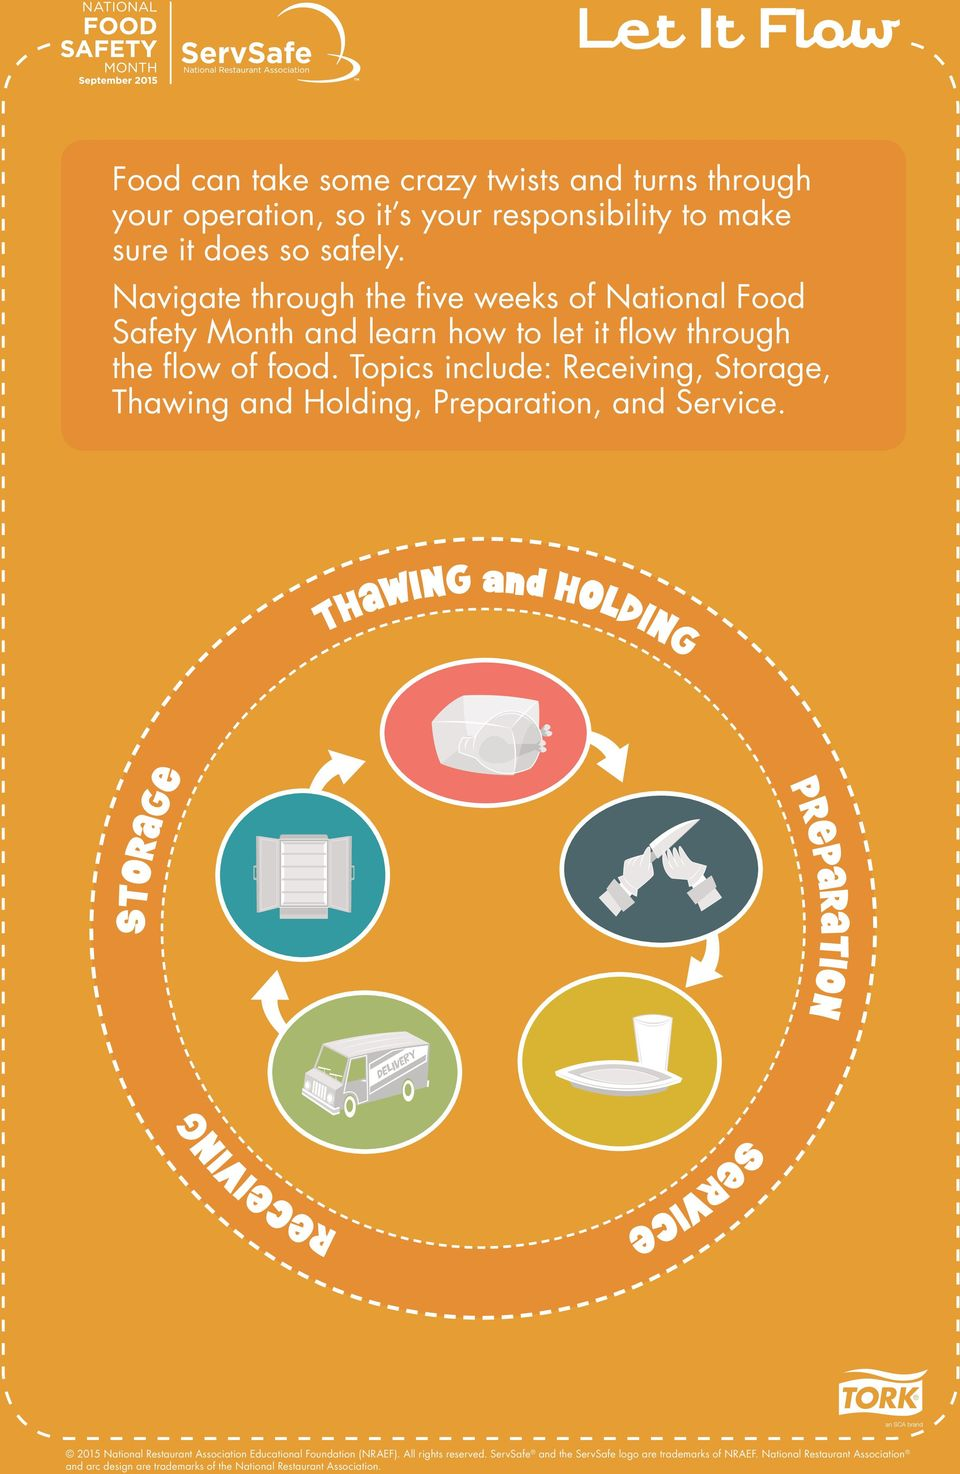 Topics include: Receiving, Storage, Thawing and Navigate Holding, Preparation, through and the Service. five weeks of National Food Safety Month and learn how to let it flow through the flow of food.